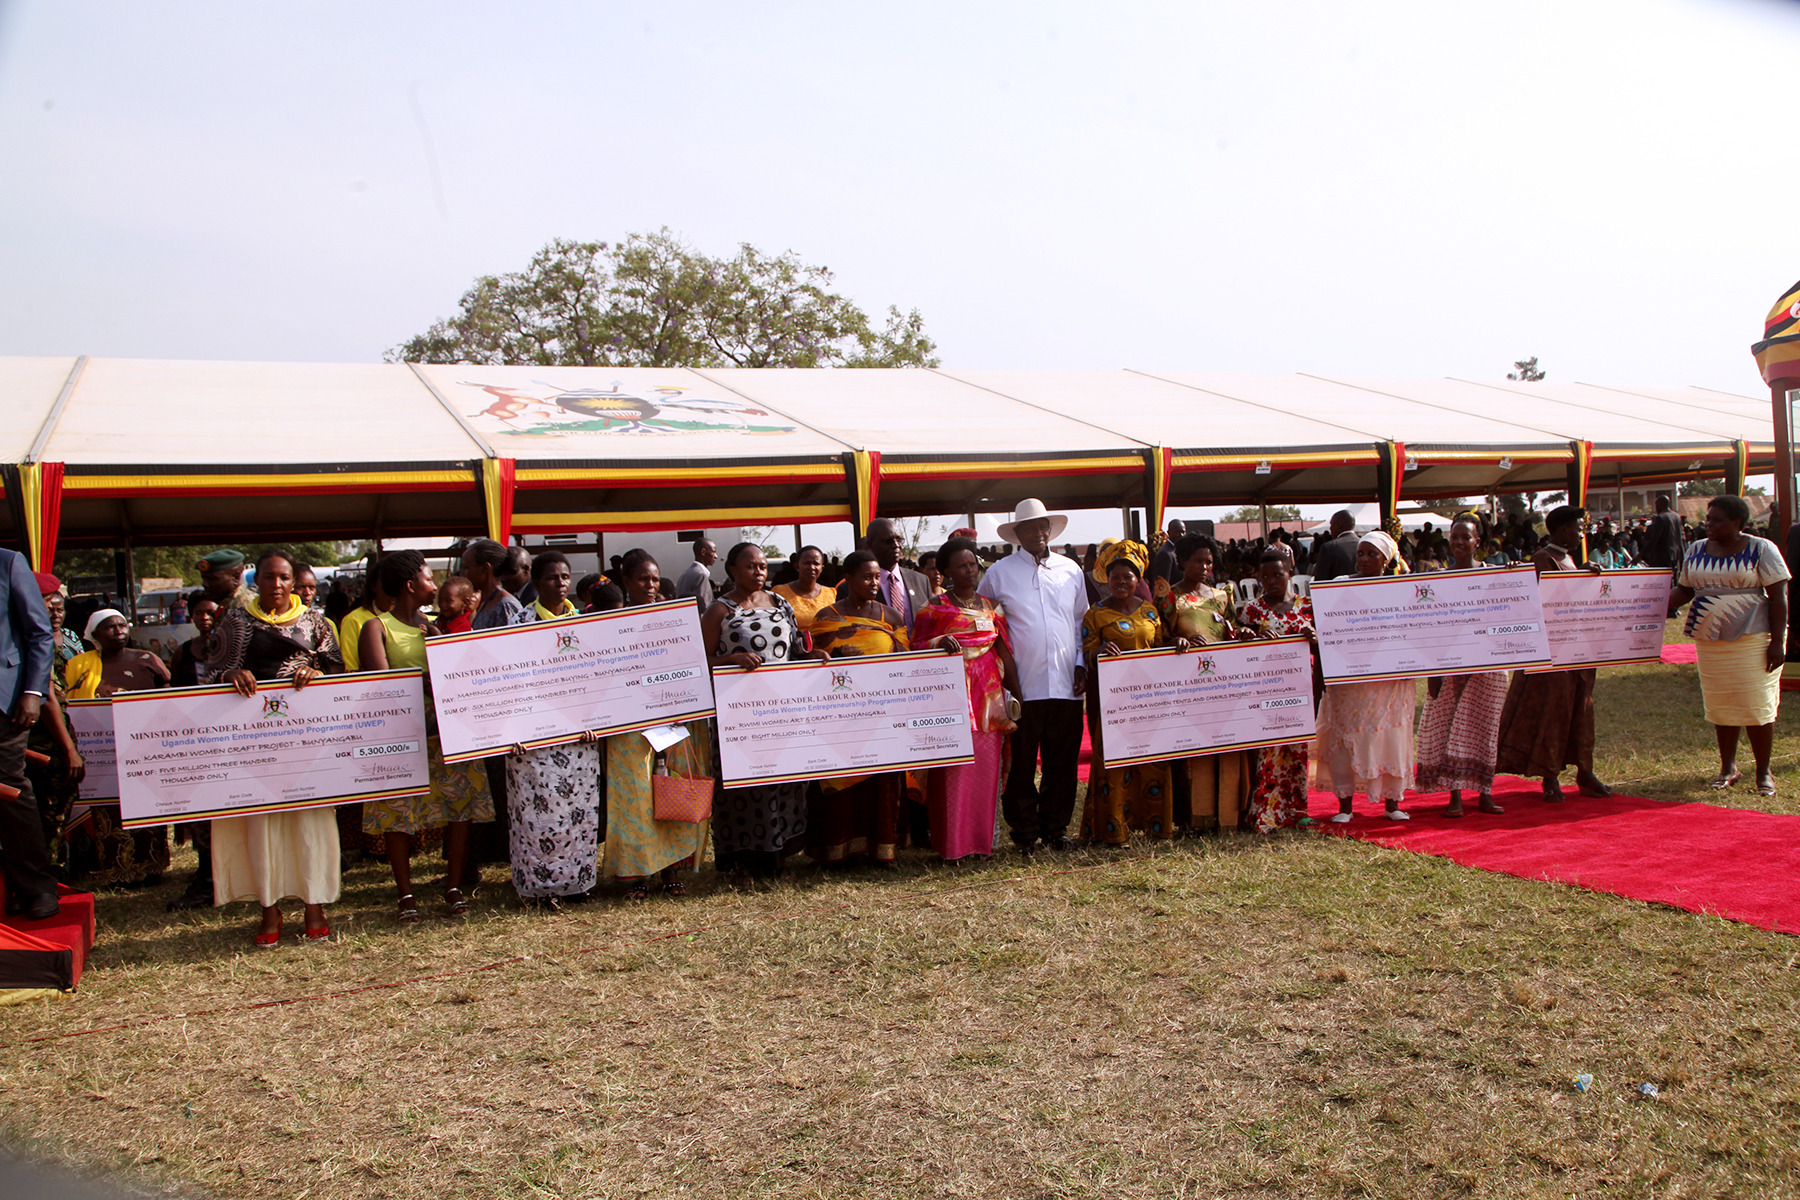 H.E President of Republic of Uganda Yoweri K. Museveni hands over cheques worth over 2 billion shillings to local women Groups and the Leadership of Rwenzori region districts